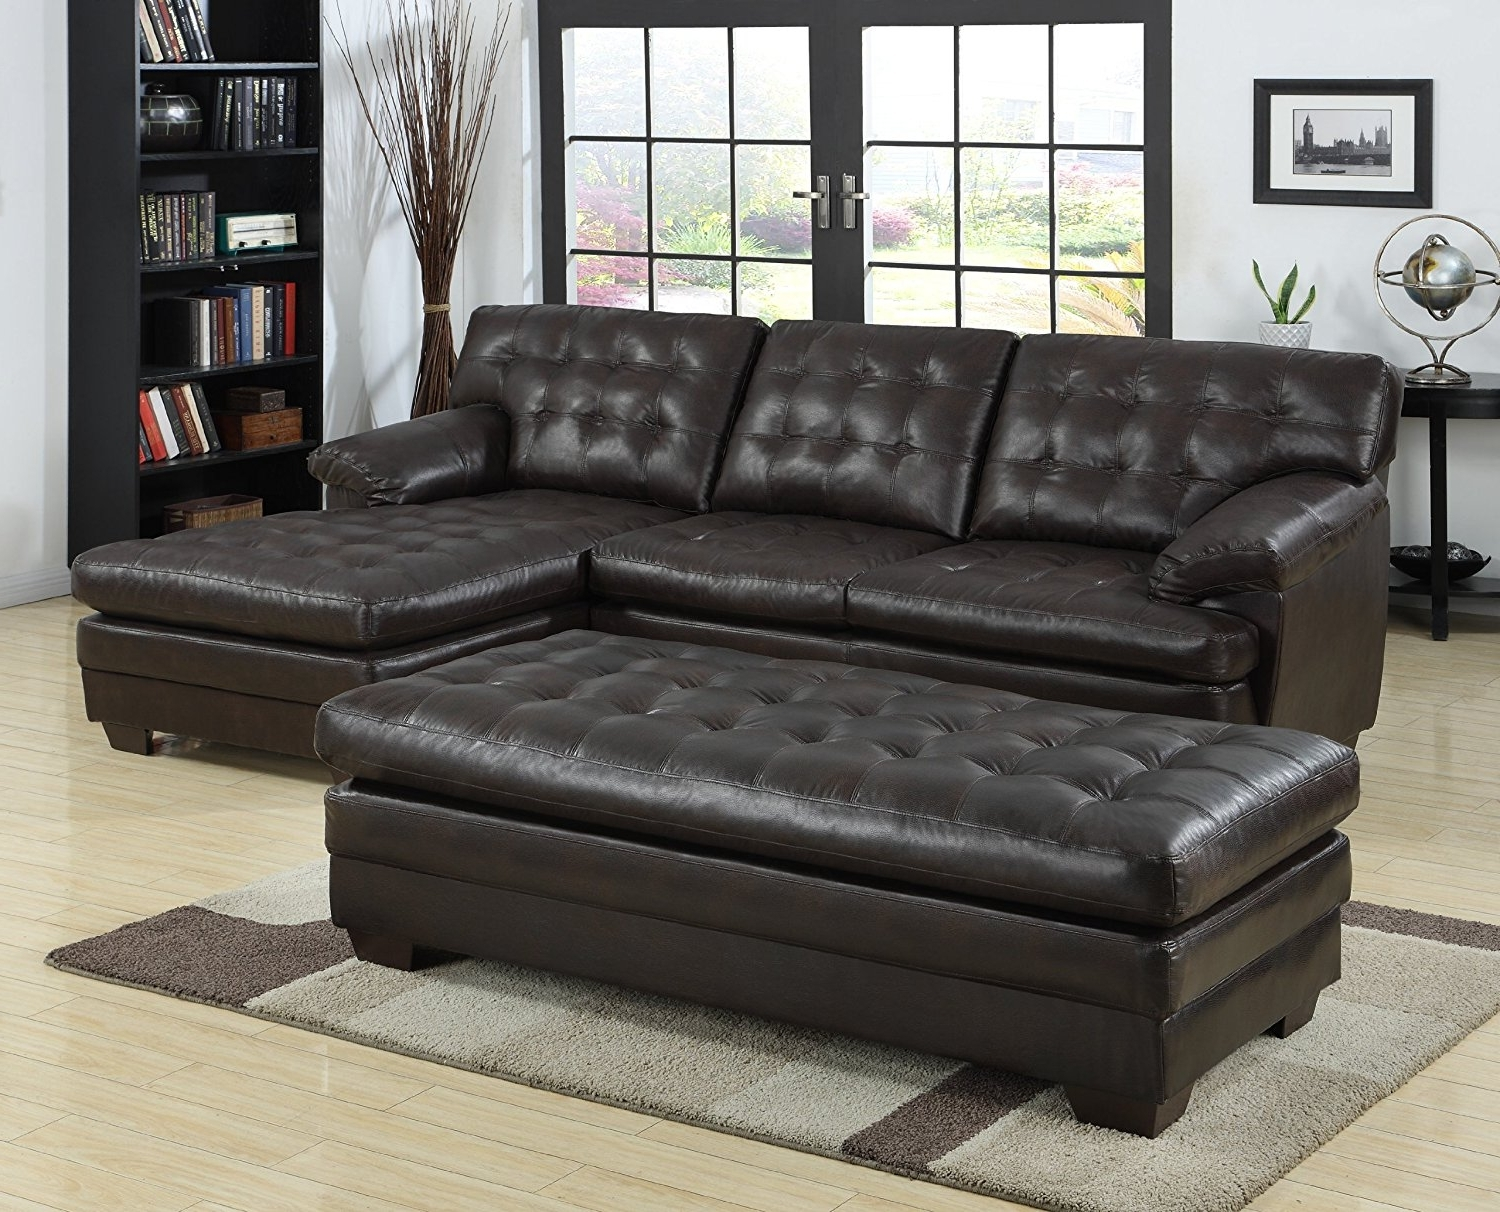 Best And Newest Amazon: Homelegance 9739 Channel Tufted 2 Piece Sectional Sofa Regarding Couches With Chaise Lounge (View 7 of 15)